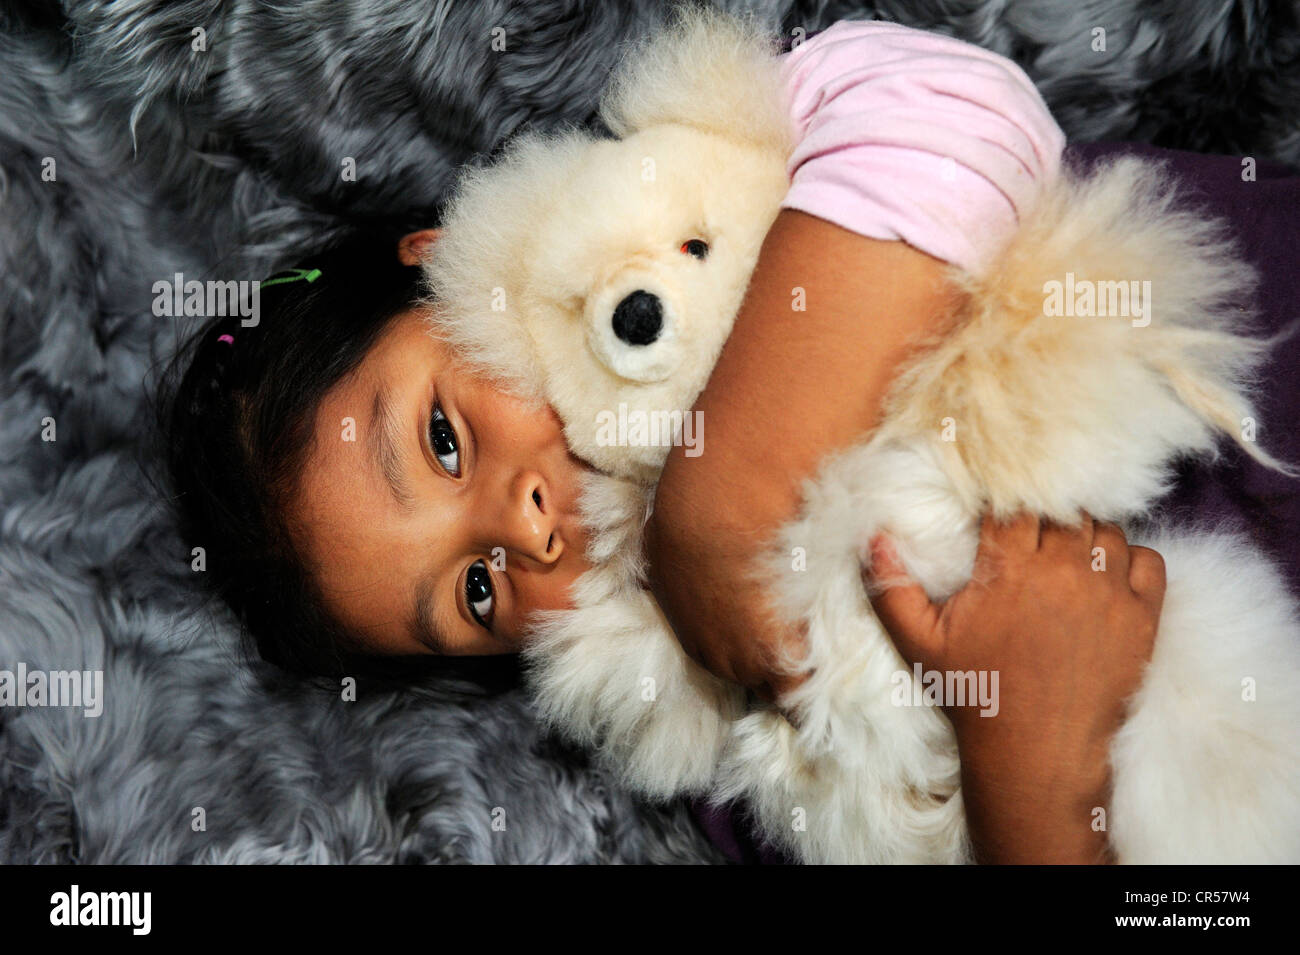 Girl with indigenous facial features hugging a teddy bear, production of soft toys and carpets from alpaca fur in - Stock Image